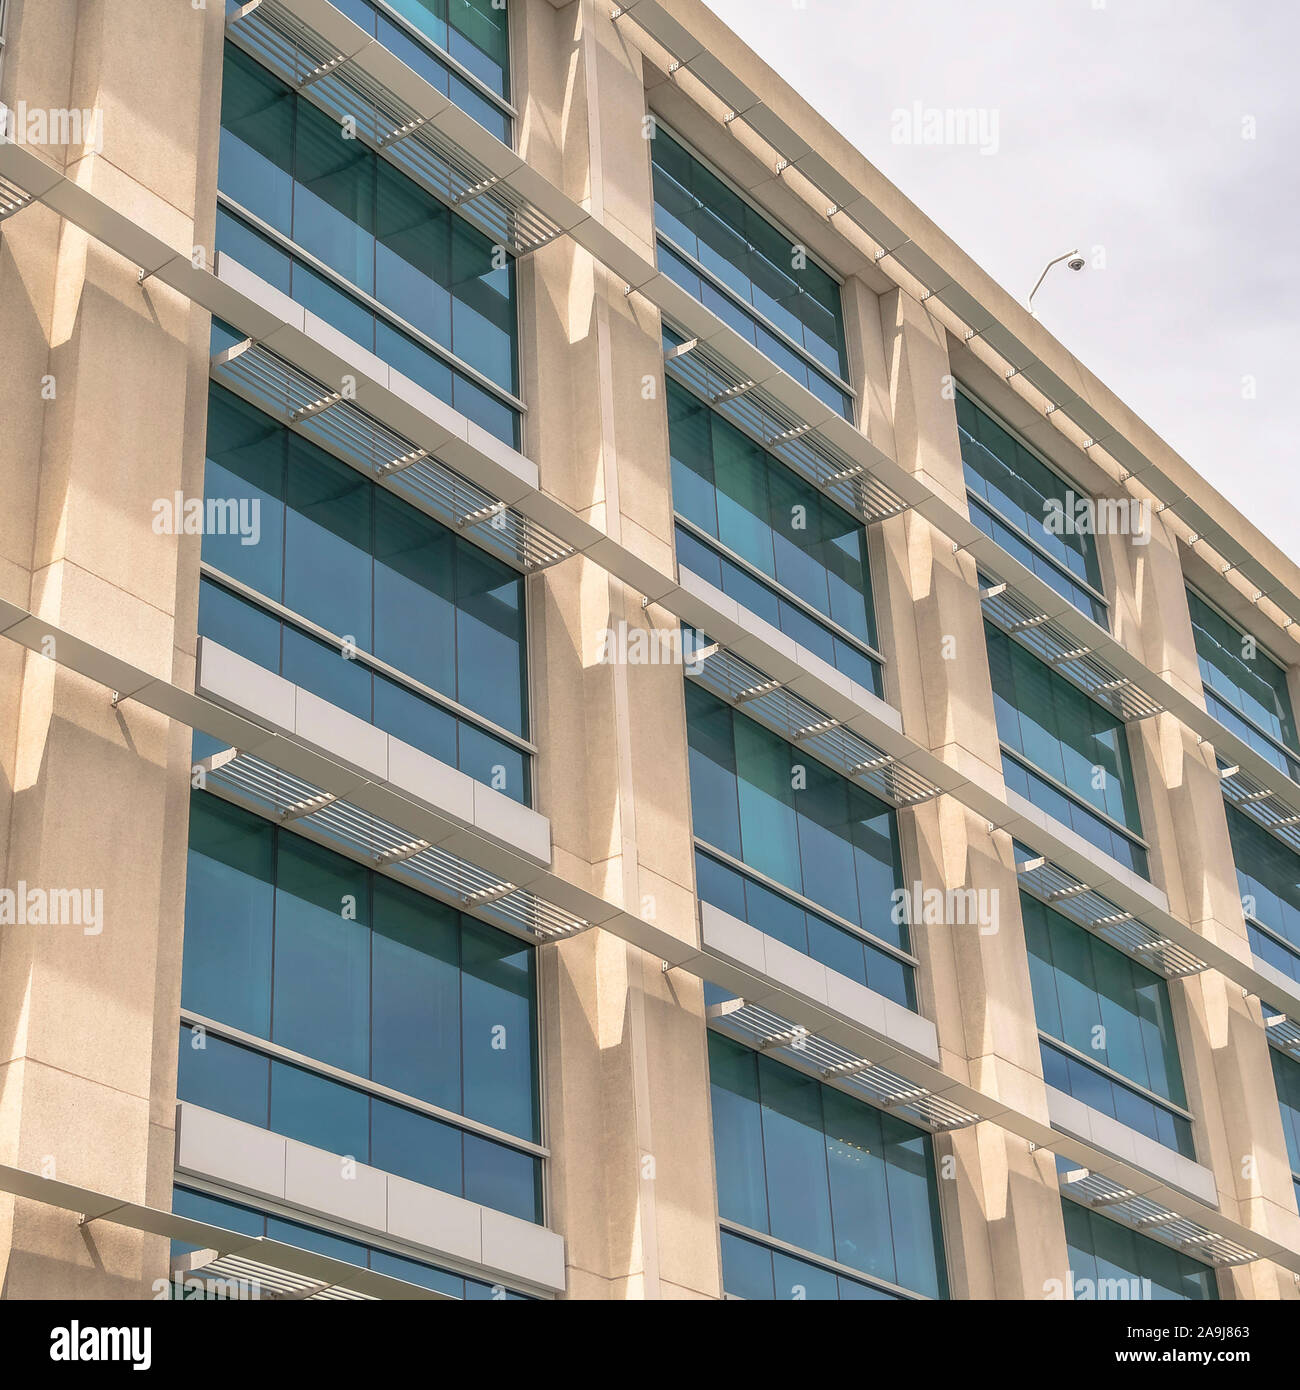 Square frame Modern building facade close up with glass windows and sunlit concrete wall Stock Photo